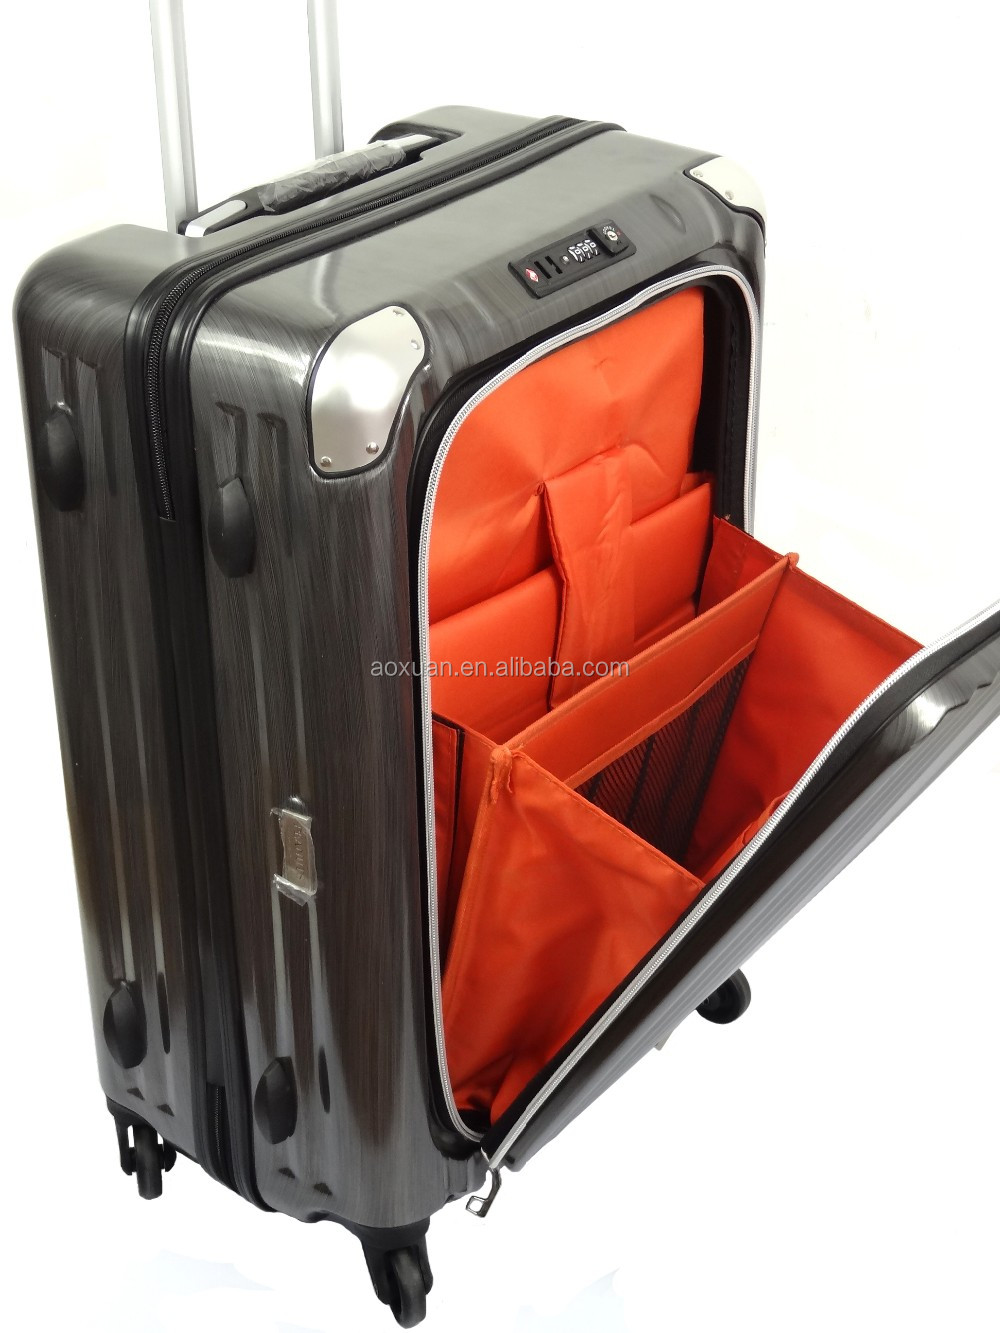 easy access pocket luggage with laptop compartment luggage pocket luggageeasy access pocket luggage with laptop compartment lugg